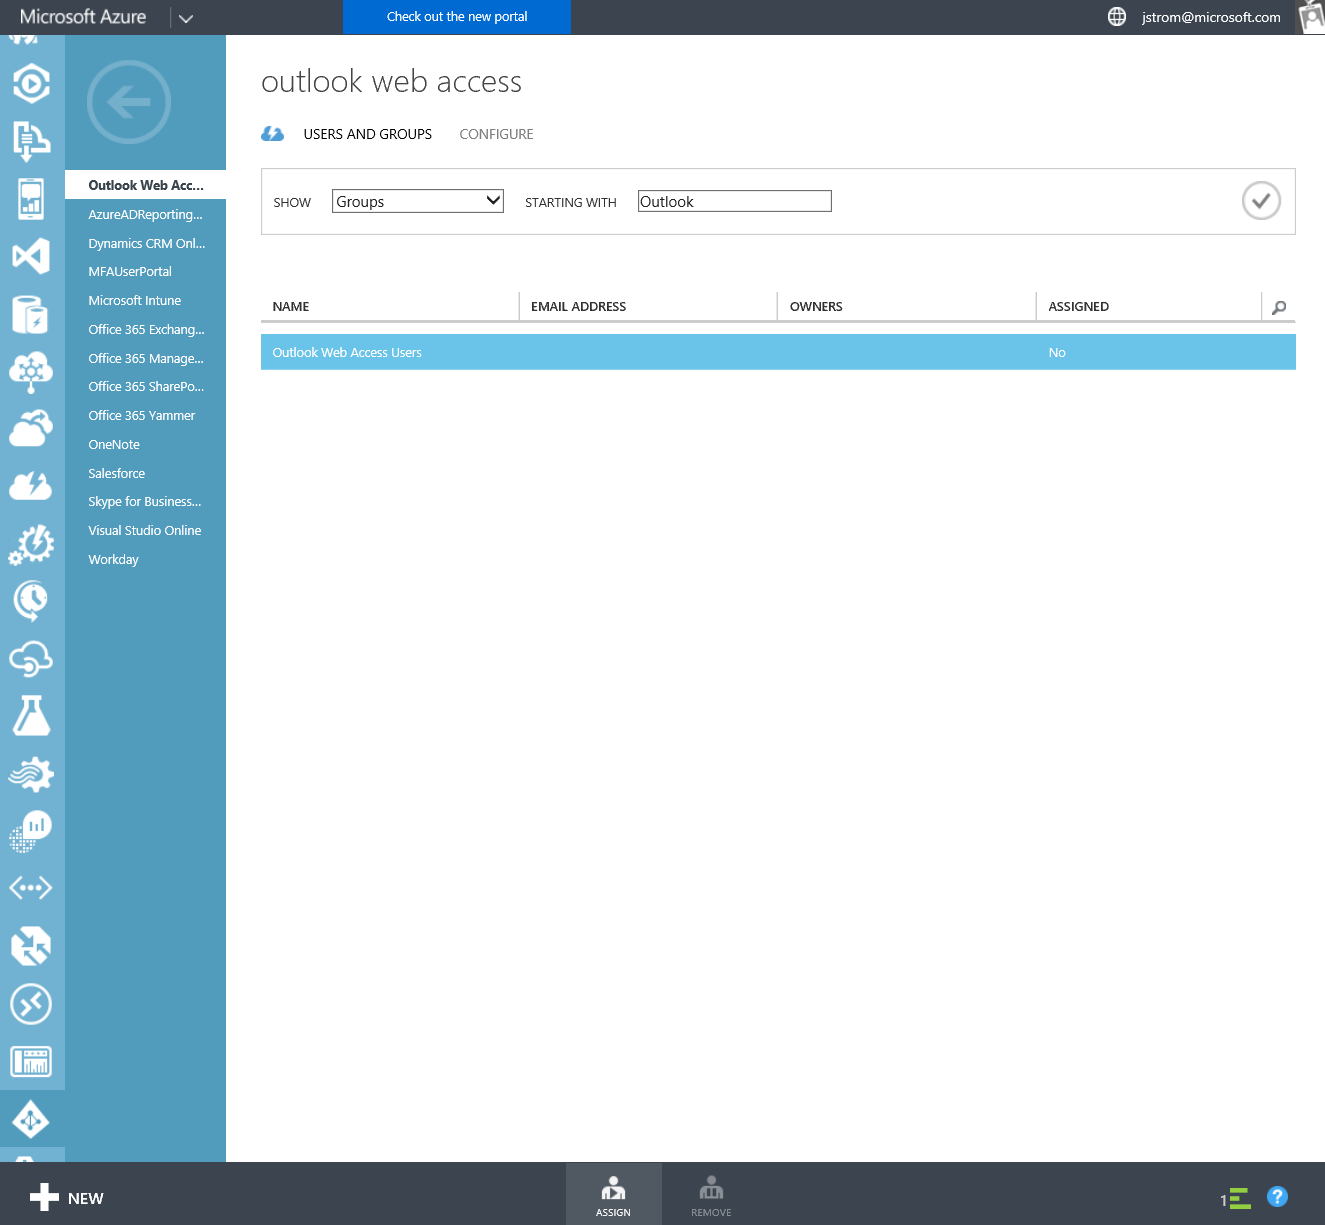 Azure Active Directory - Instance - Applications - OWA - Users and Groups - Assign